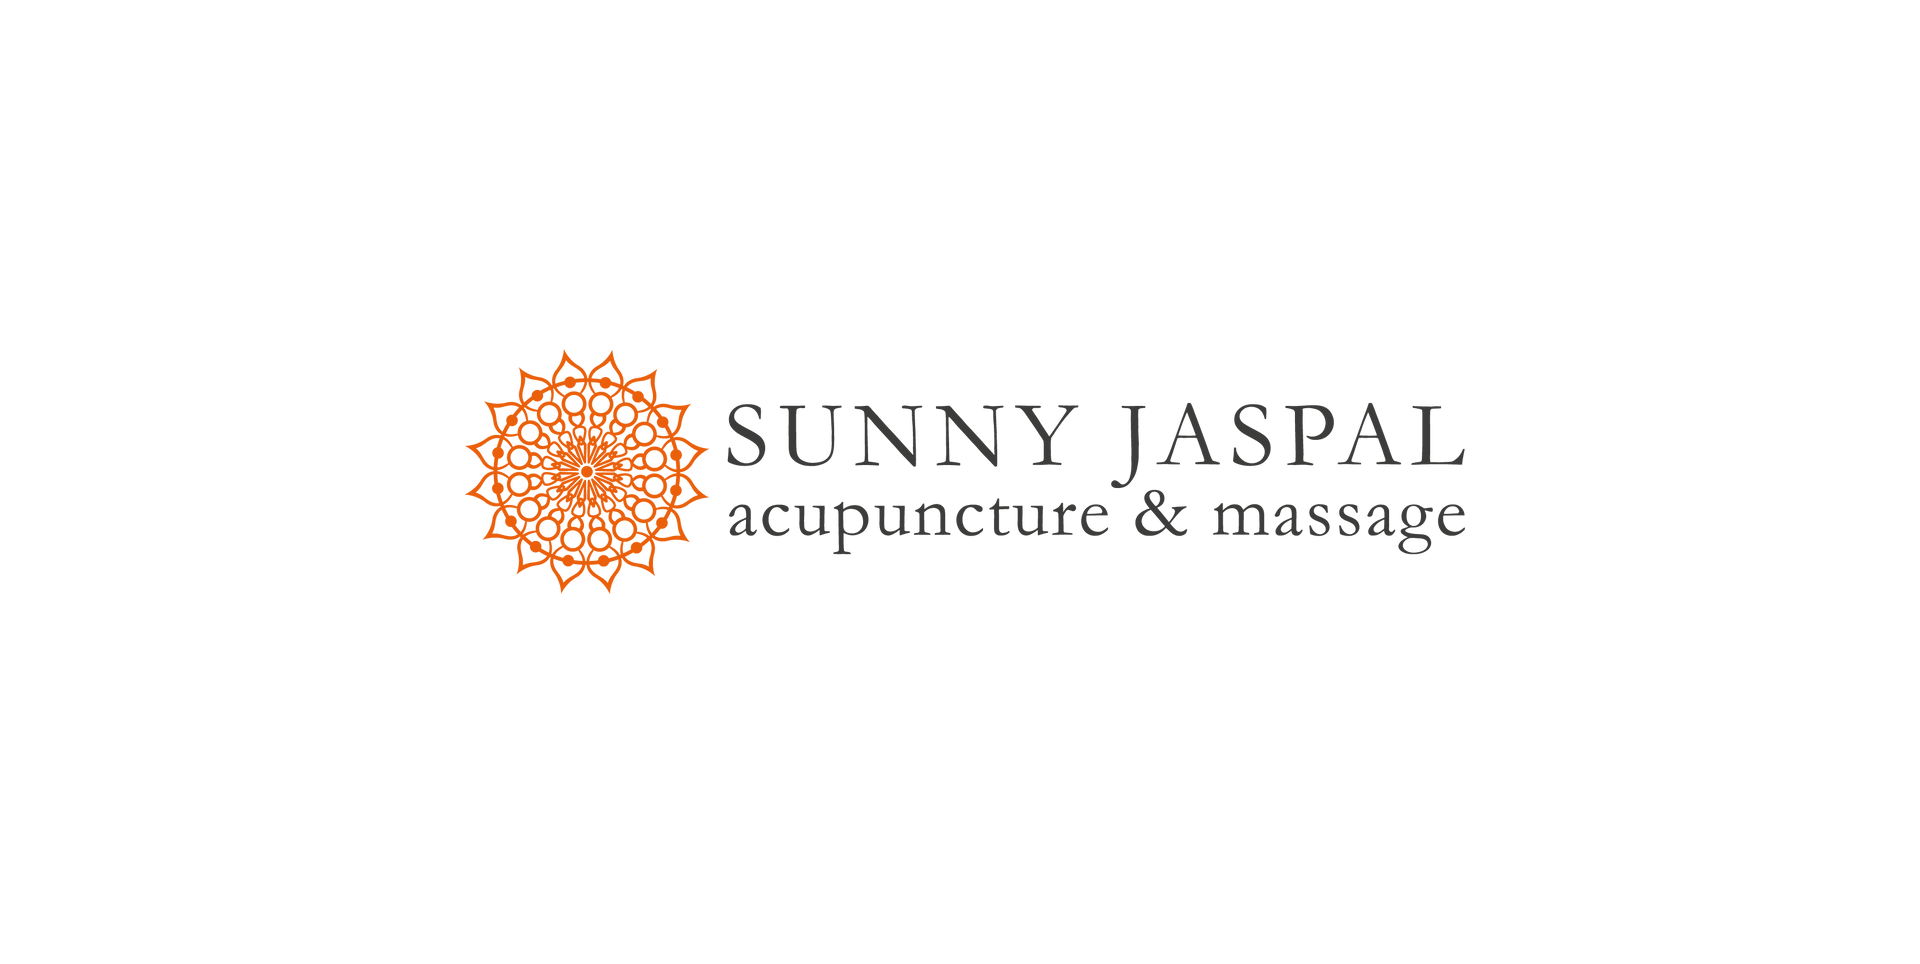 Sunny Jaspal - Acupuncture & Massage